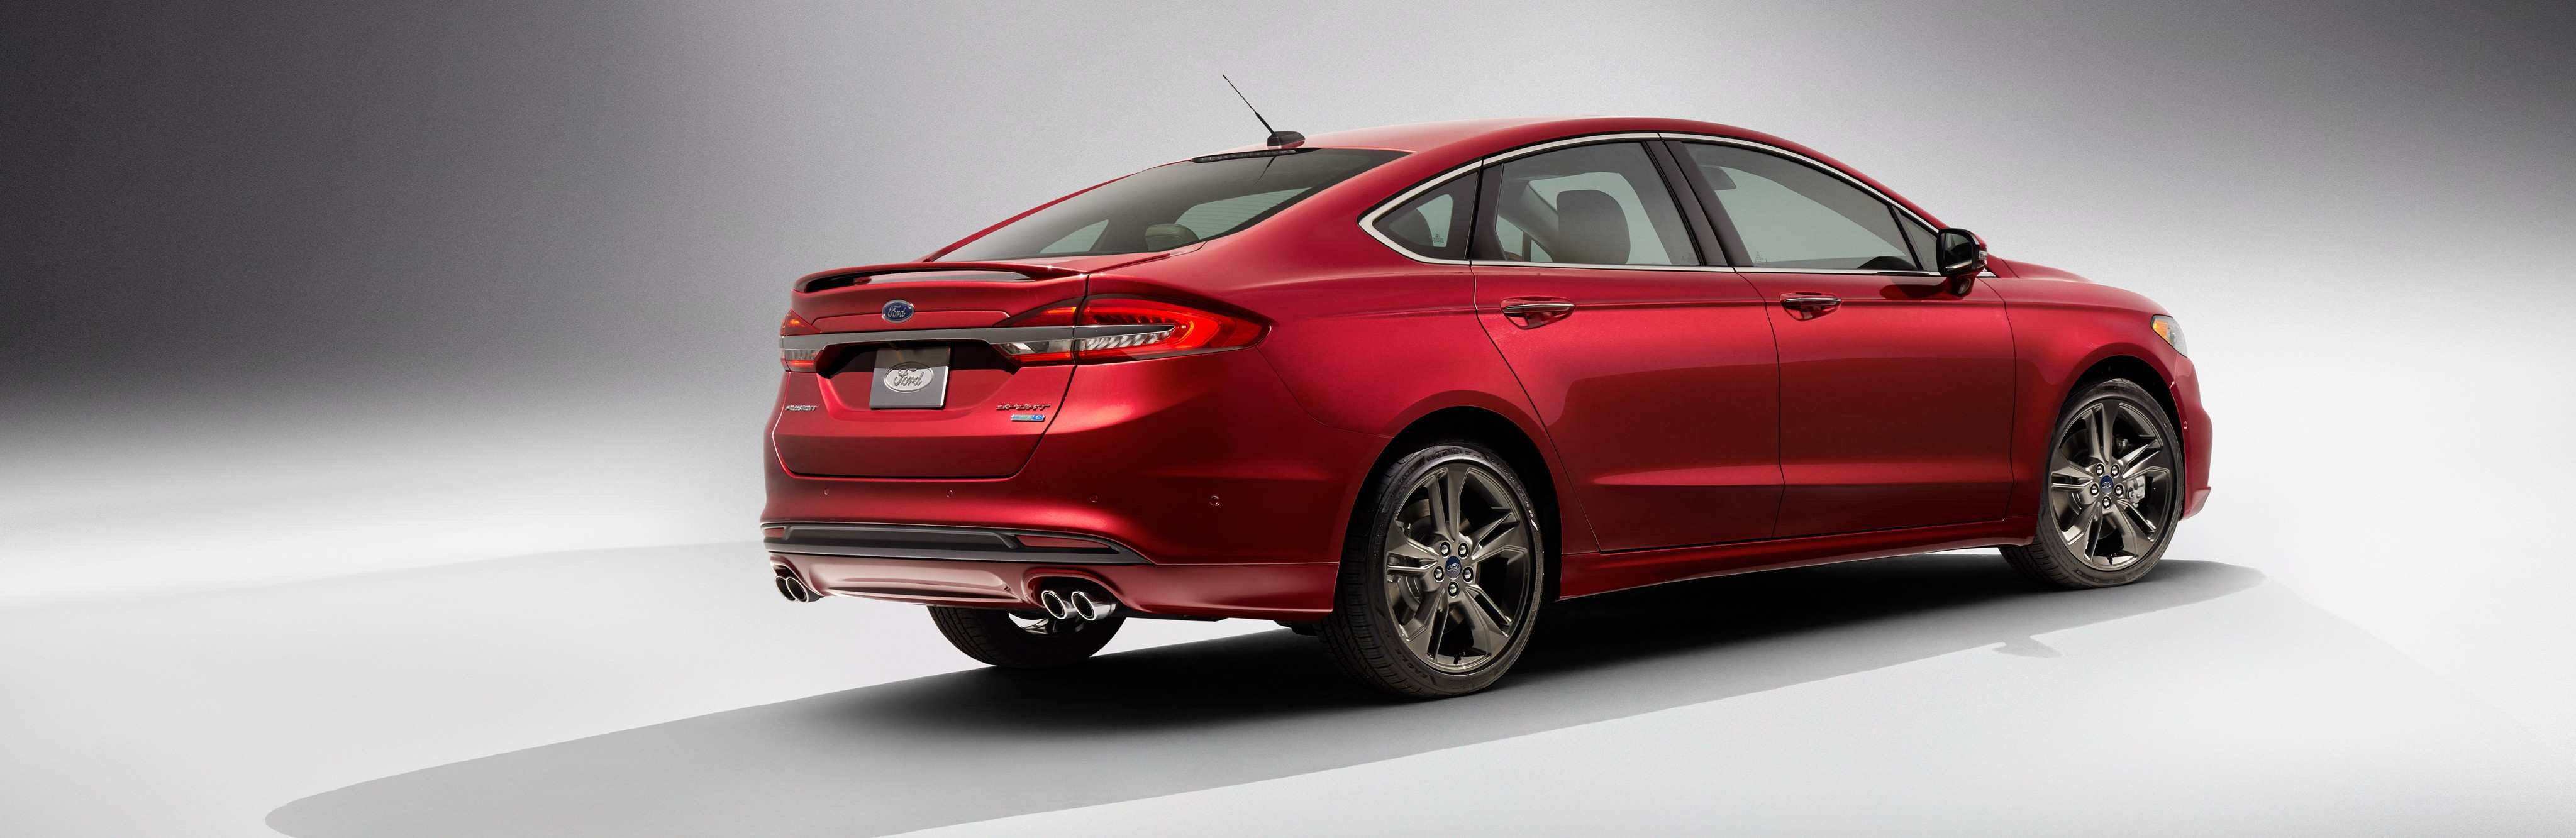 96 The Best 2020 Ford Fusion Redesign Release Date And Concept